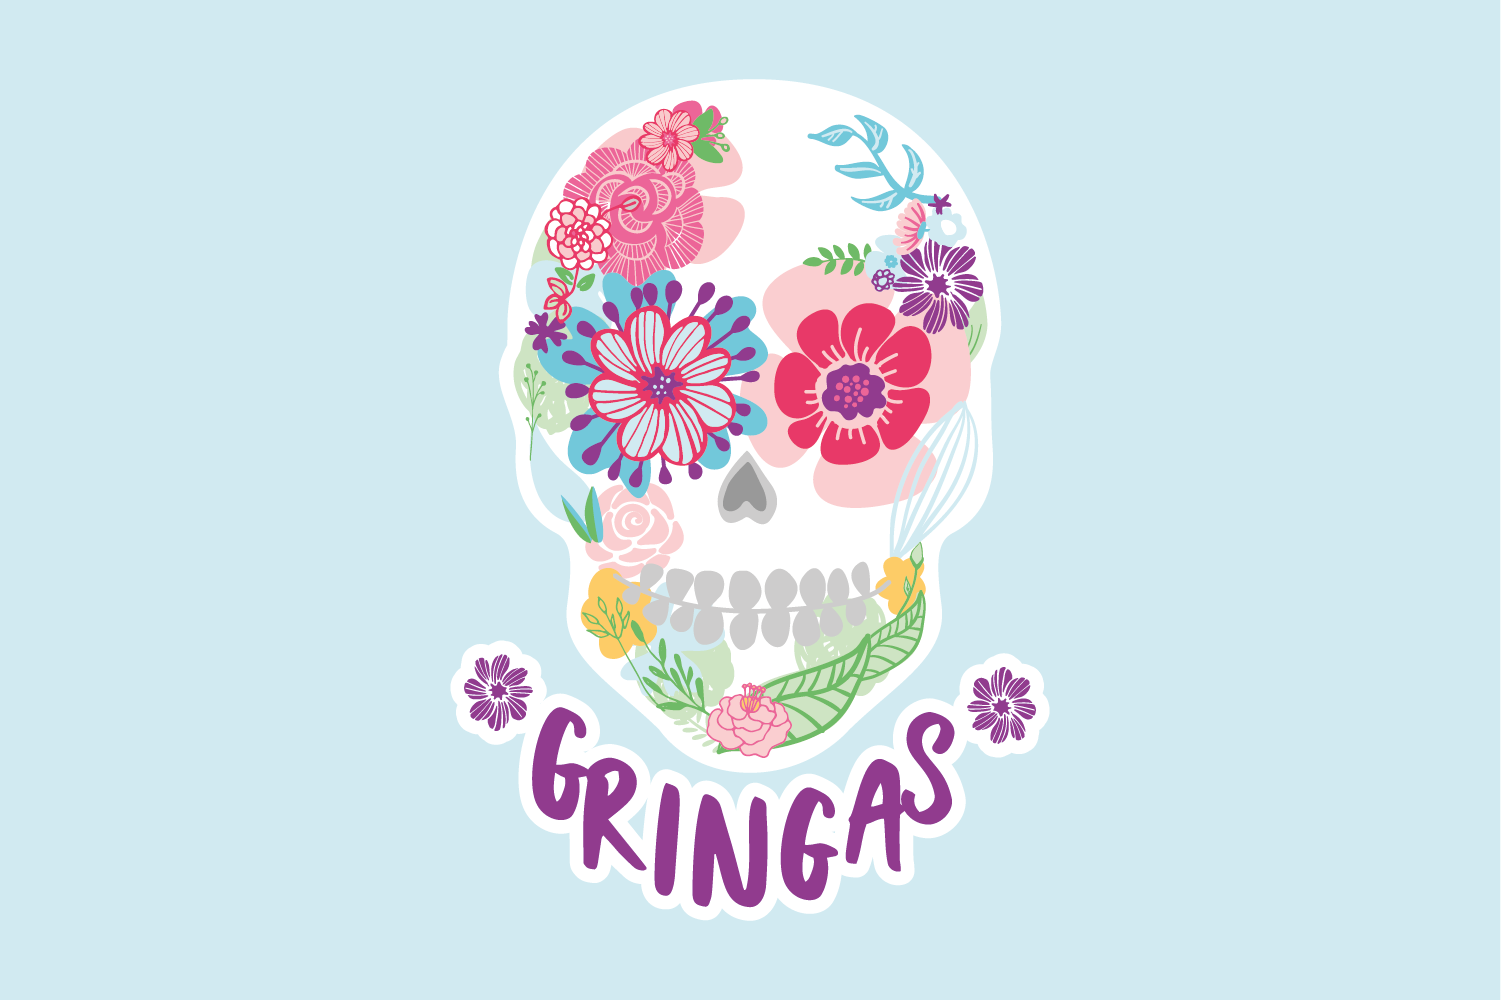 Gringas Mexican-inspired Food Truck